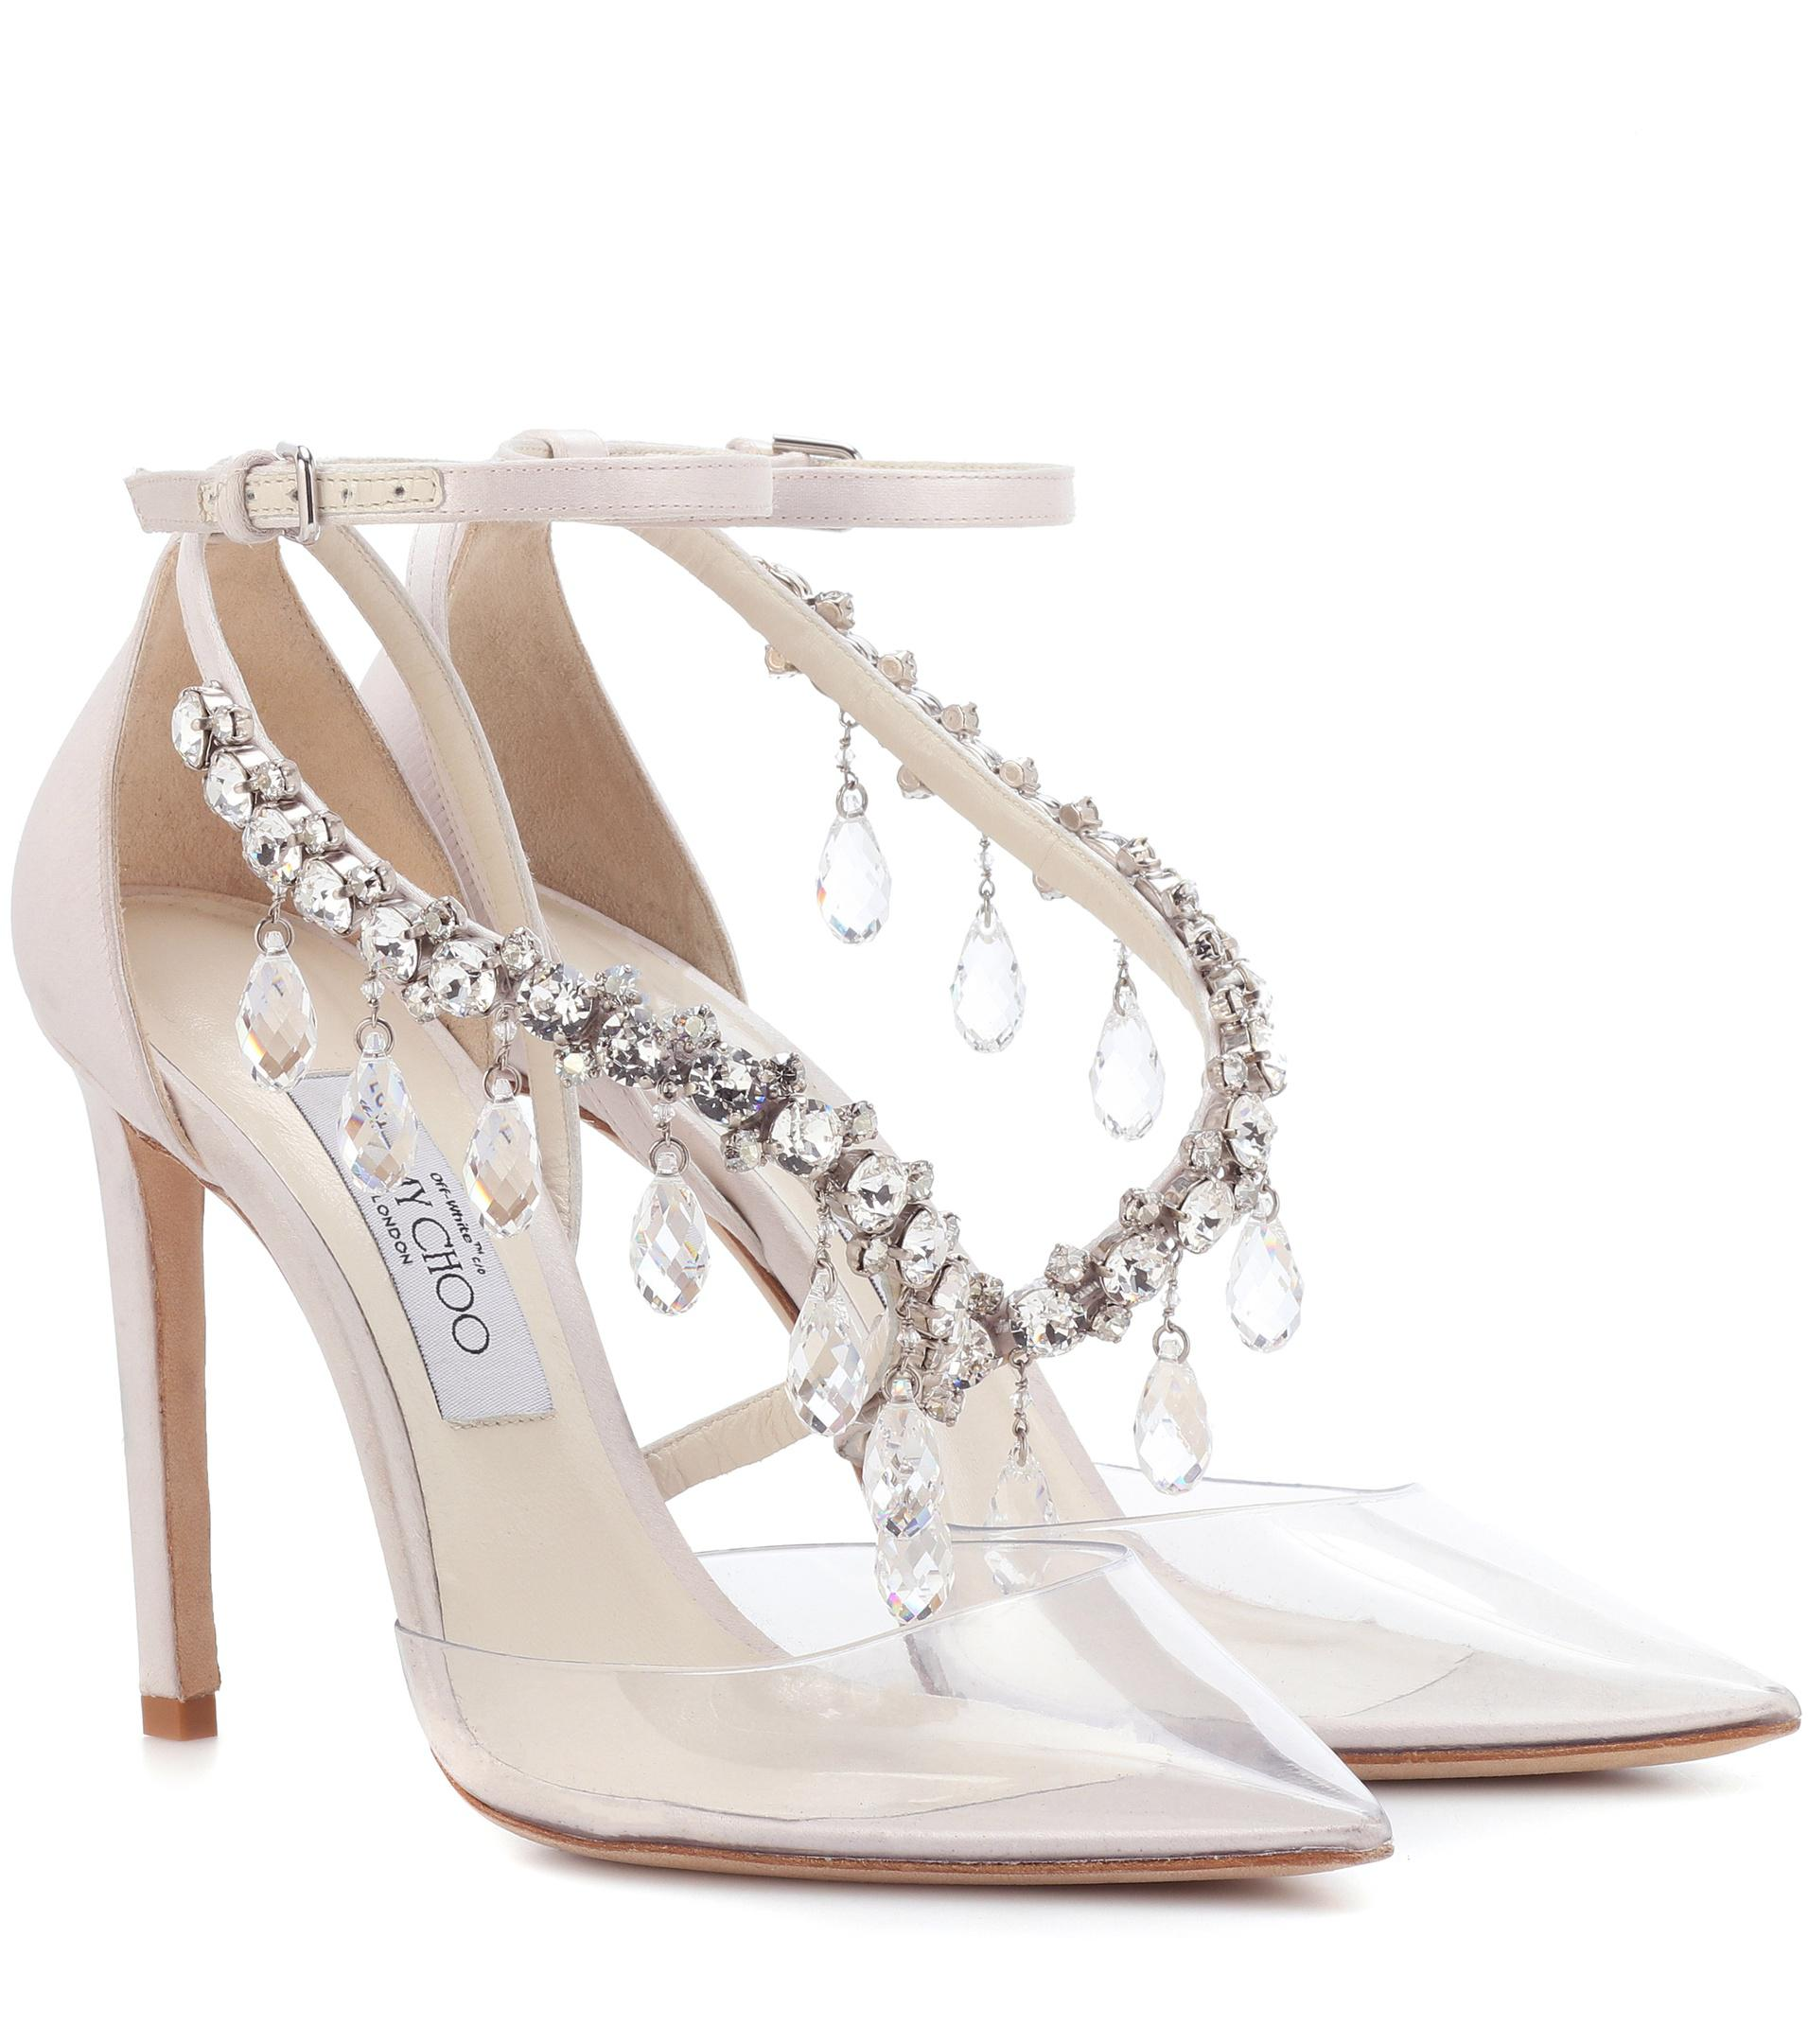 efc719b40c83 ... spain lyst jimmy choo x off white victoria 100 embellished satin pumps  3be73 ad01f